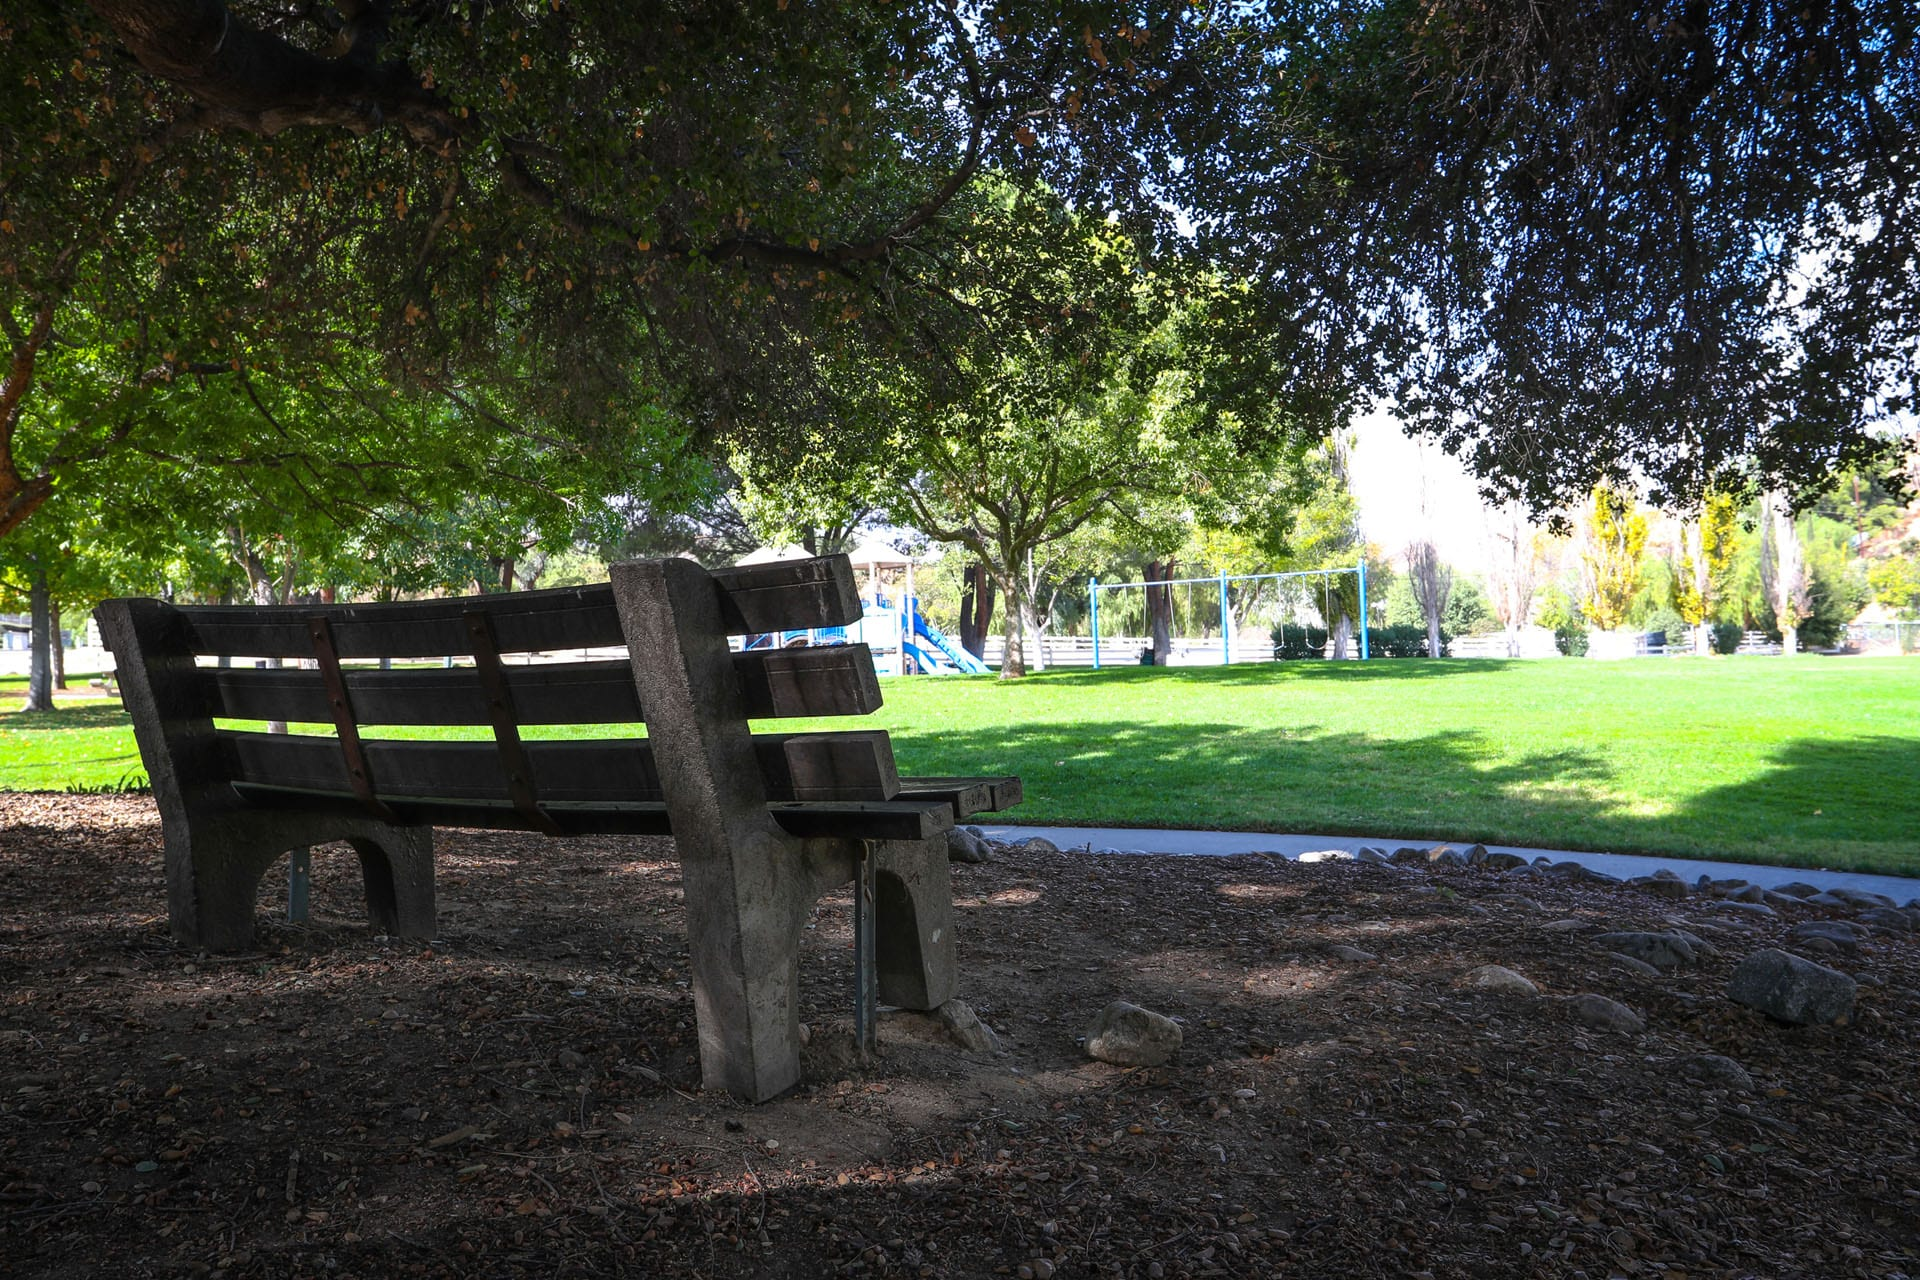 Bench next to walkway and park